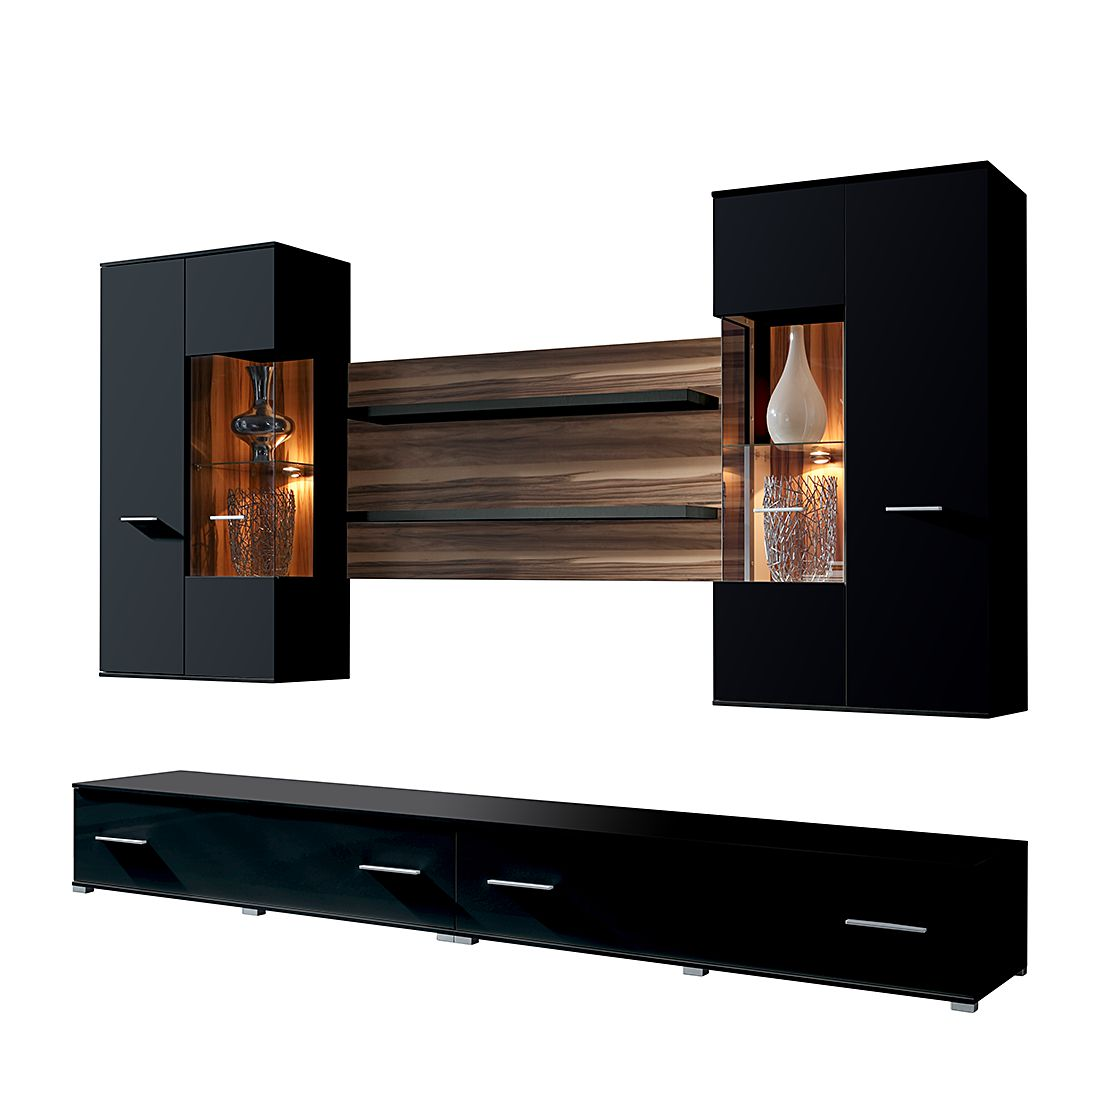 nussbaum wohnwand beautiful moderne wohnwand nussbaum holz modul now time with nussbaum. Black Bedroom Furniture Sets. Home Design Ideas